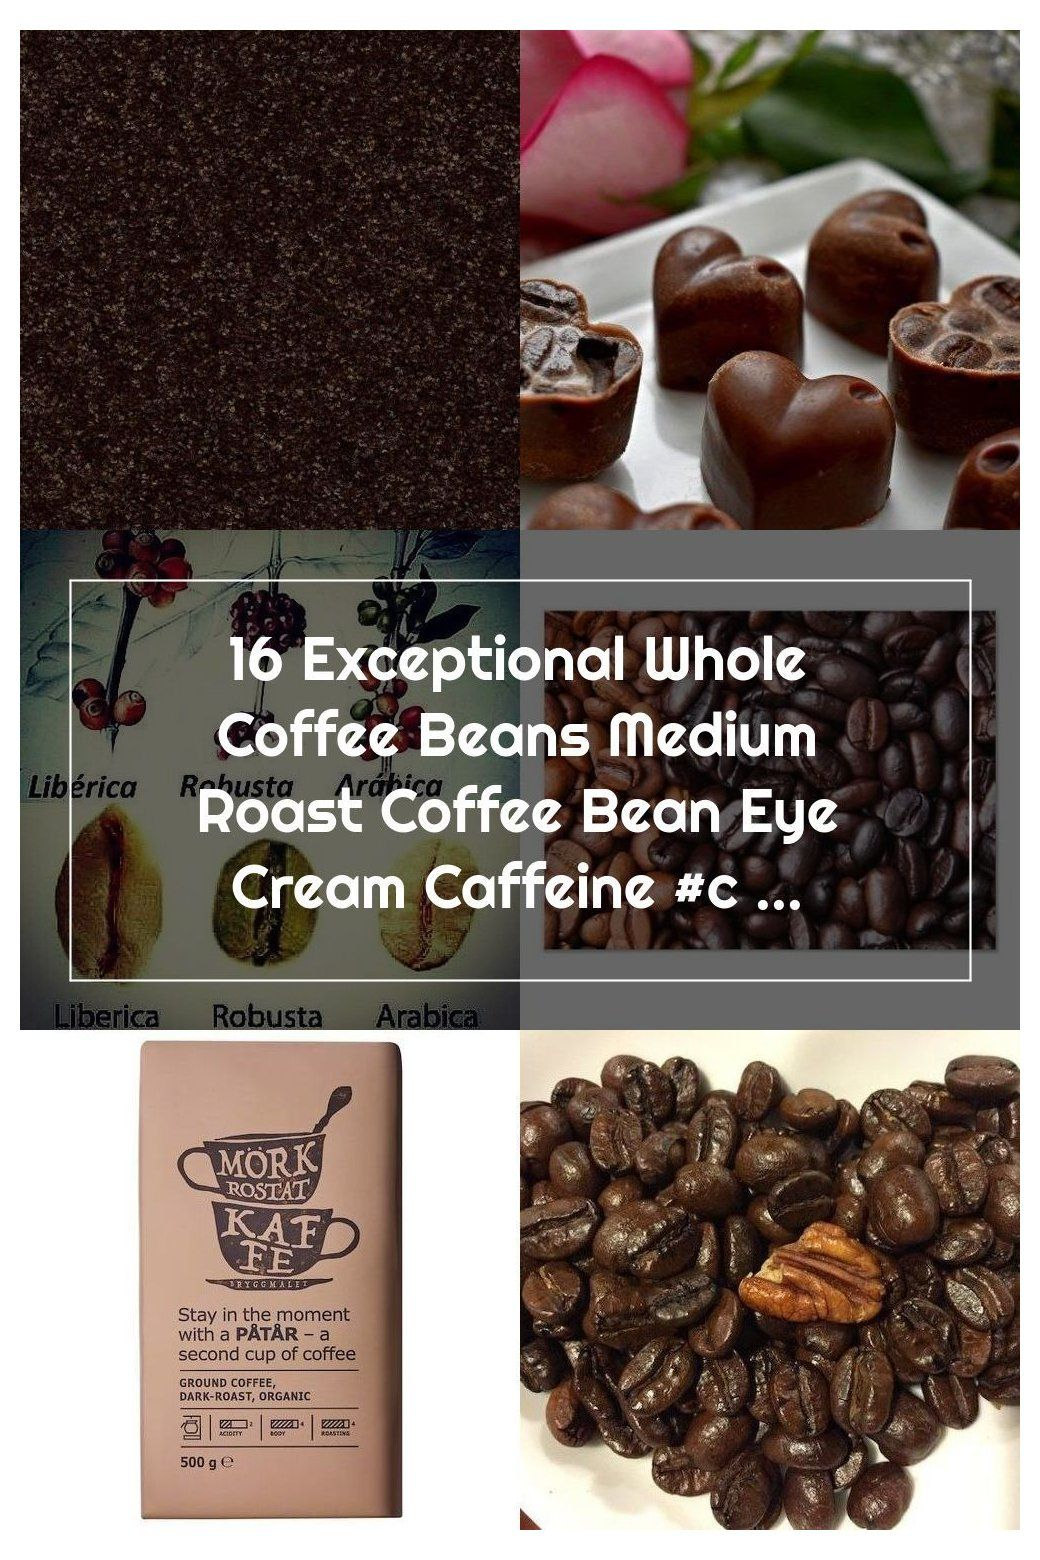 16 Exceptional Whole Coffee Beans Medium Roast Coffee Bean Eye Cream Caffei Coffee Beans Medium Roast In 2020 Roasted Coffee Beans Medium Roast Coffee Coffee Beans